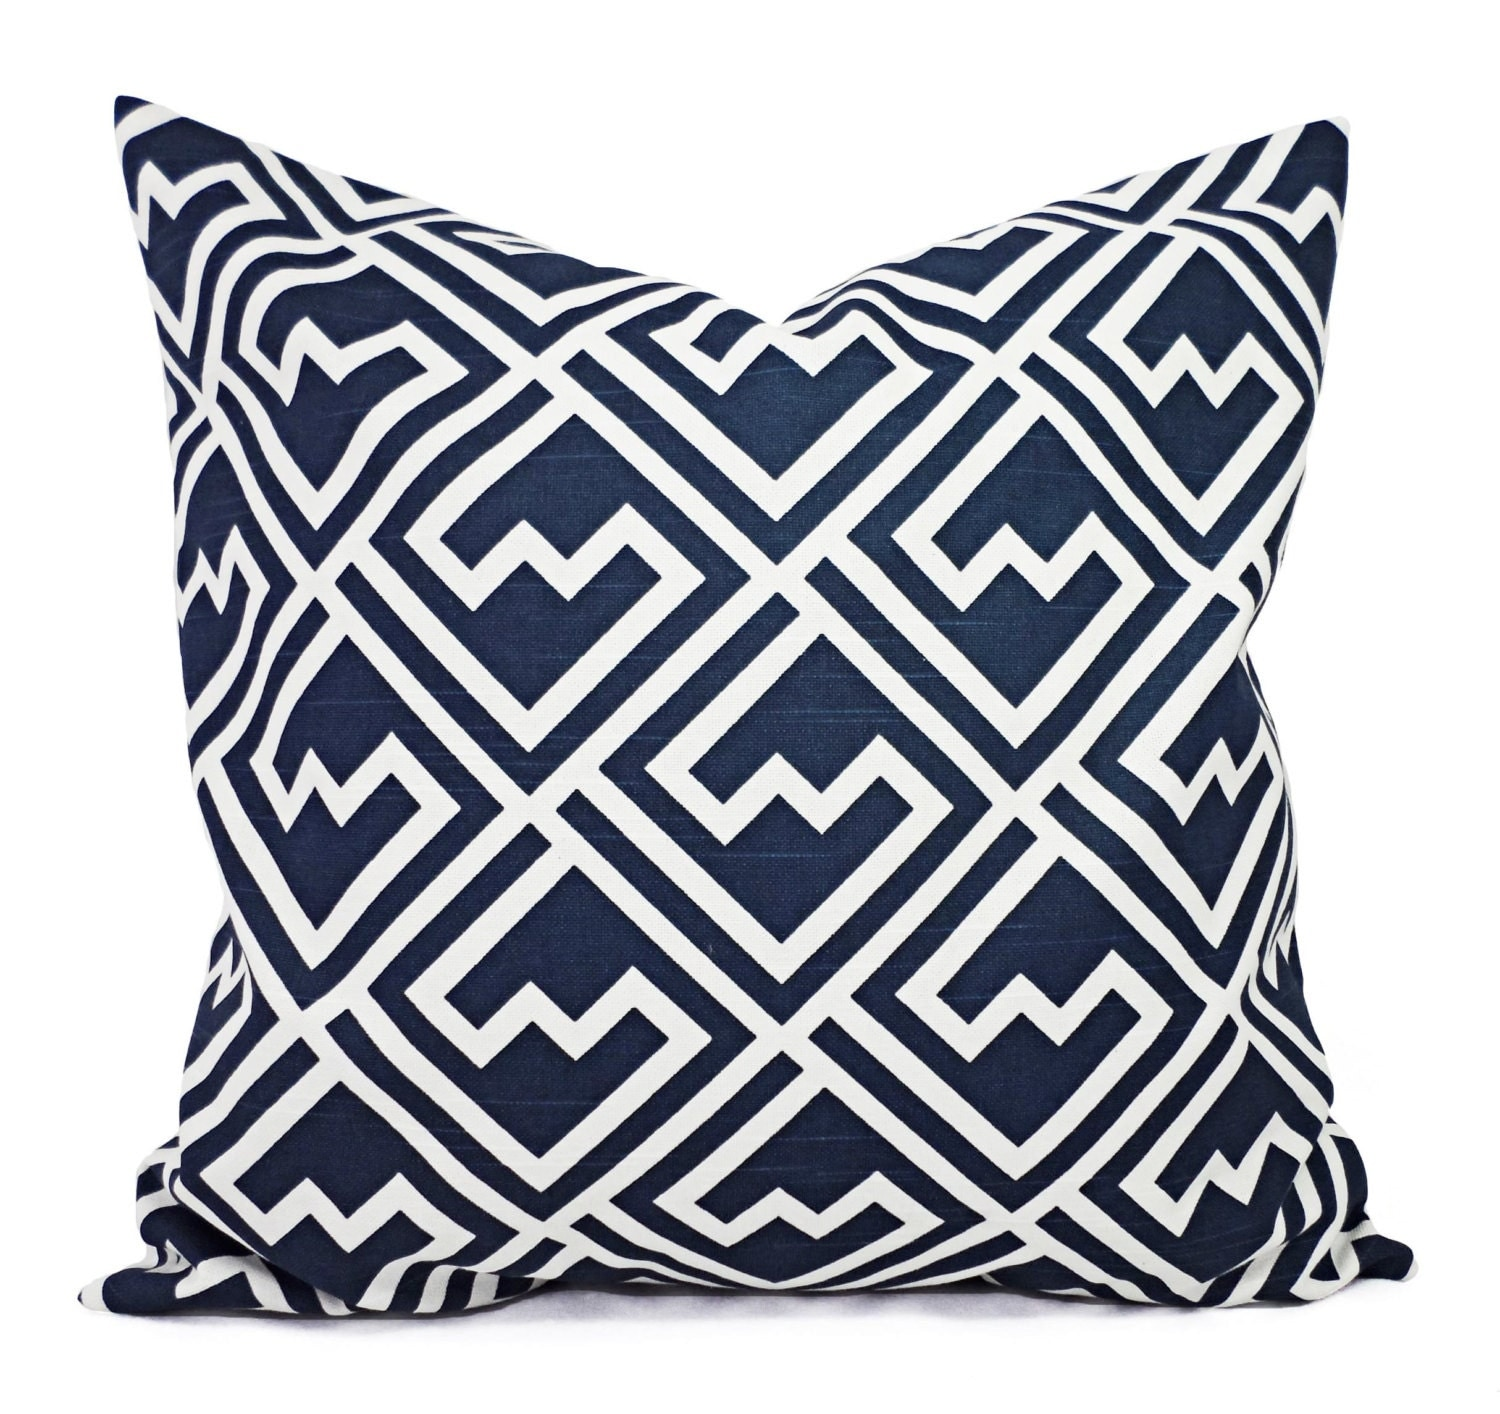 White Decorative Pillow Shams : Navy Blue Pillow Shams Two Navy and White by CastawayCoveDecor